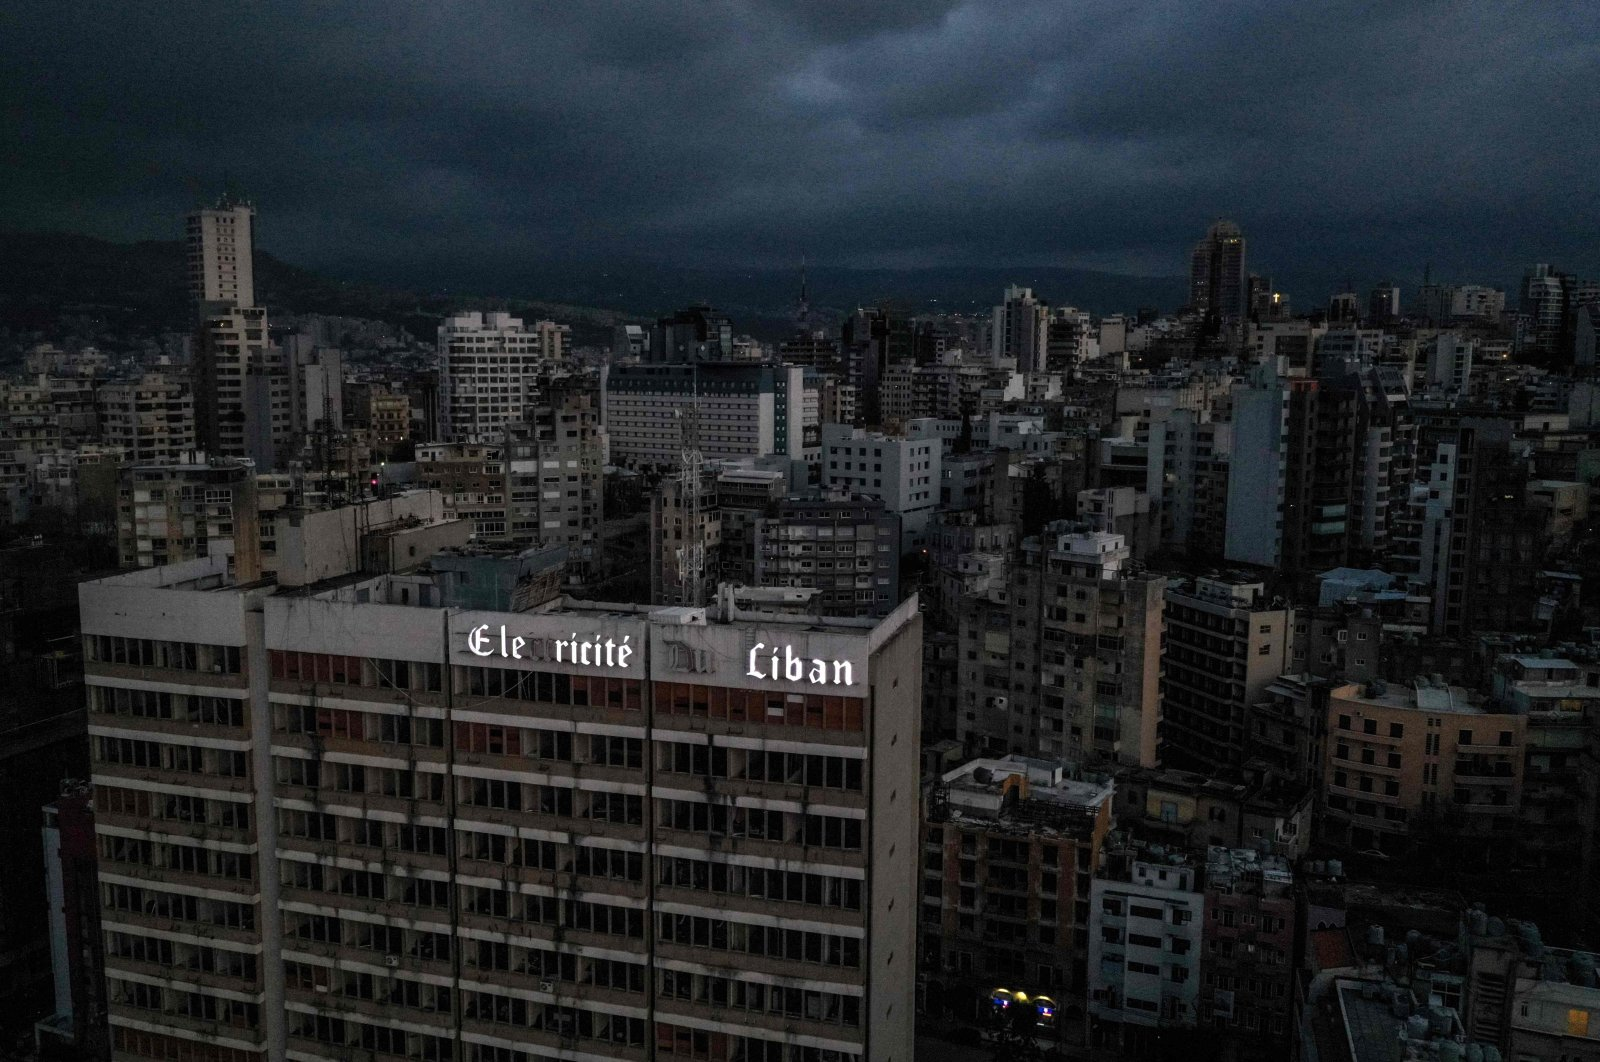 Lebanon's capital Beirut in darkness during a power outage, with the Electricite du Liban (Electricity Of Lebanon) national company headquarters in the foreground, Beirut, Lebanon, April 3, 2021. (AFP Photo)